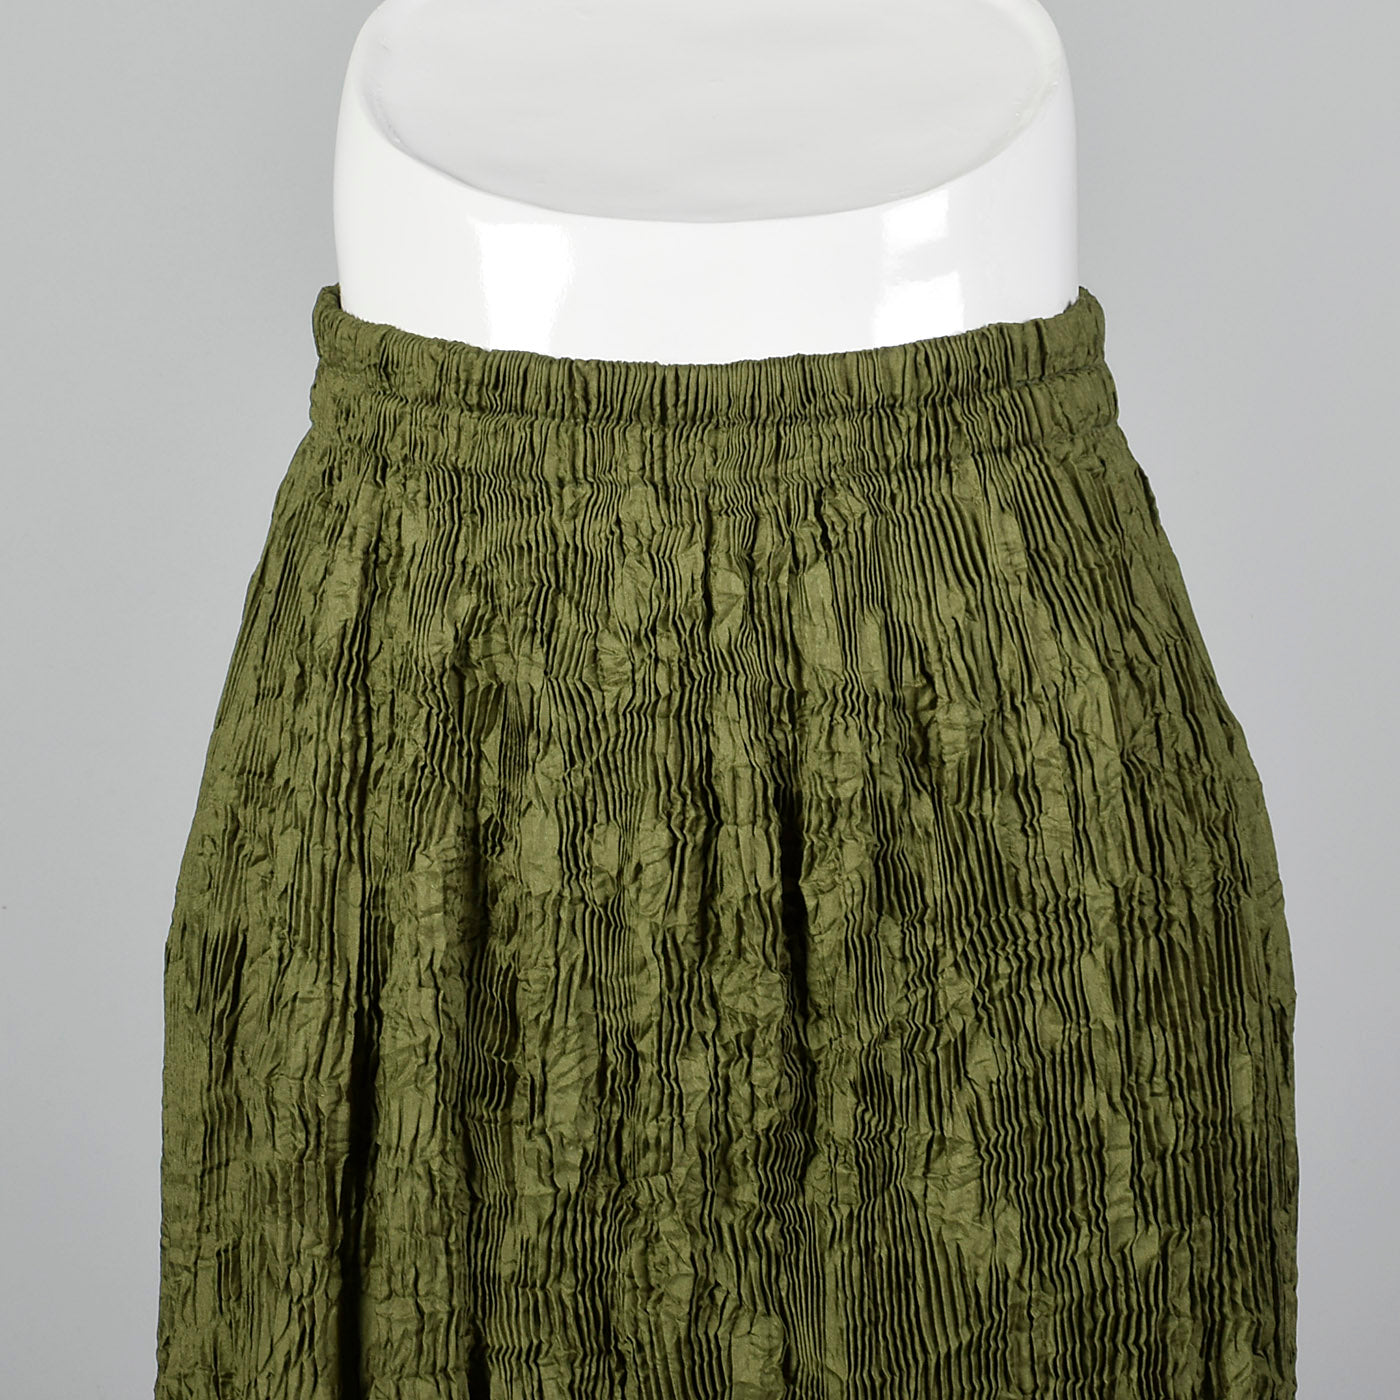 2000s Issey Miyake Pleated Skirt with Bubble Hem and Fleece Applique